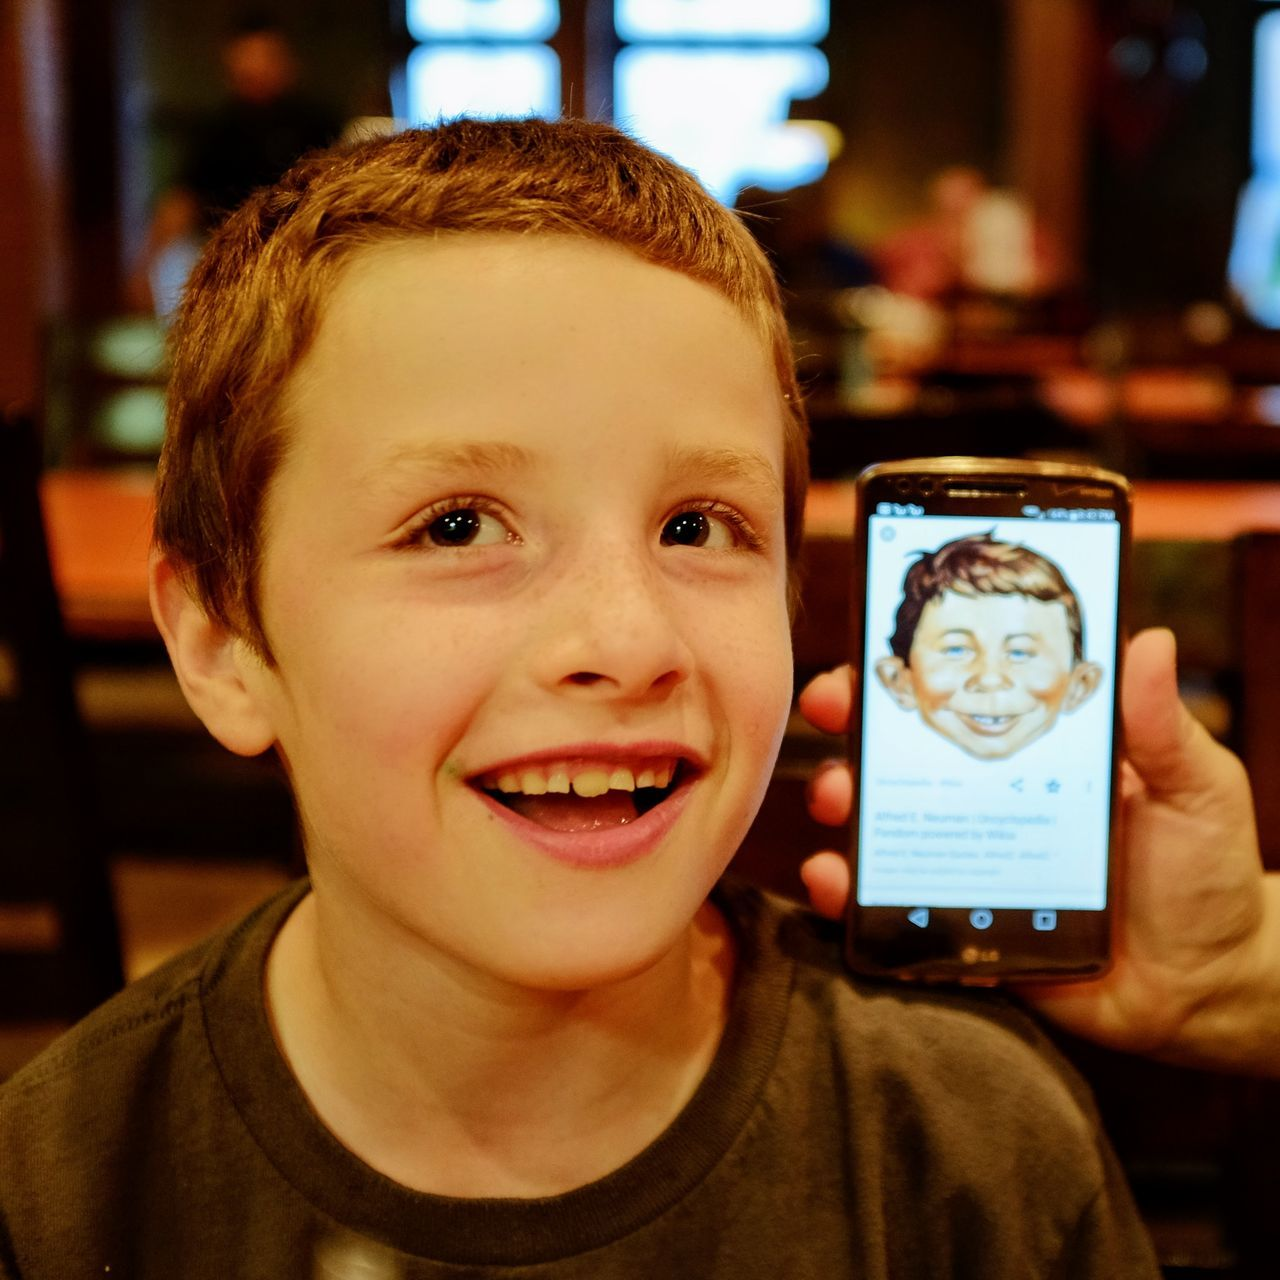 Visual journal May 2017 Beatrice. Nebraska https://www.theparisreview.org/blog/2016/03/03/a-boy-with-no-birthday-turns-sixty/ A Day In The Life Alfred E. Neuman Boys Camera Work Close-up Everyday Lives Eye For Photography EyeEm Best Shots EyeEm Gallery Fujifilm EF-20 FUJIFILM X100S Look Alike Looking At Camera Looks Like Photo Diary Photographing Photography Themes Practicing Photography Real People Small Town Stories Smiling Storytelling Visual Journal What, Me Worry? Wireless Technology